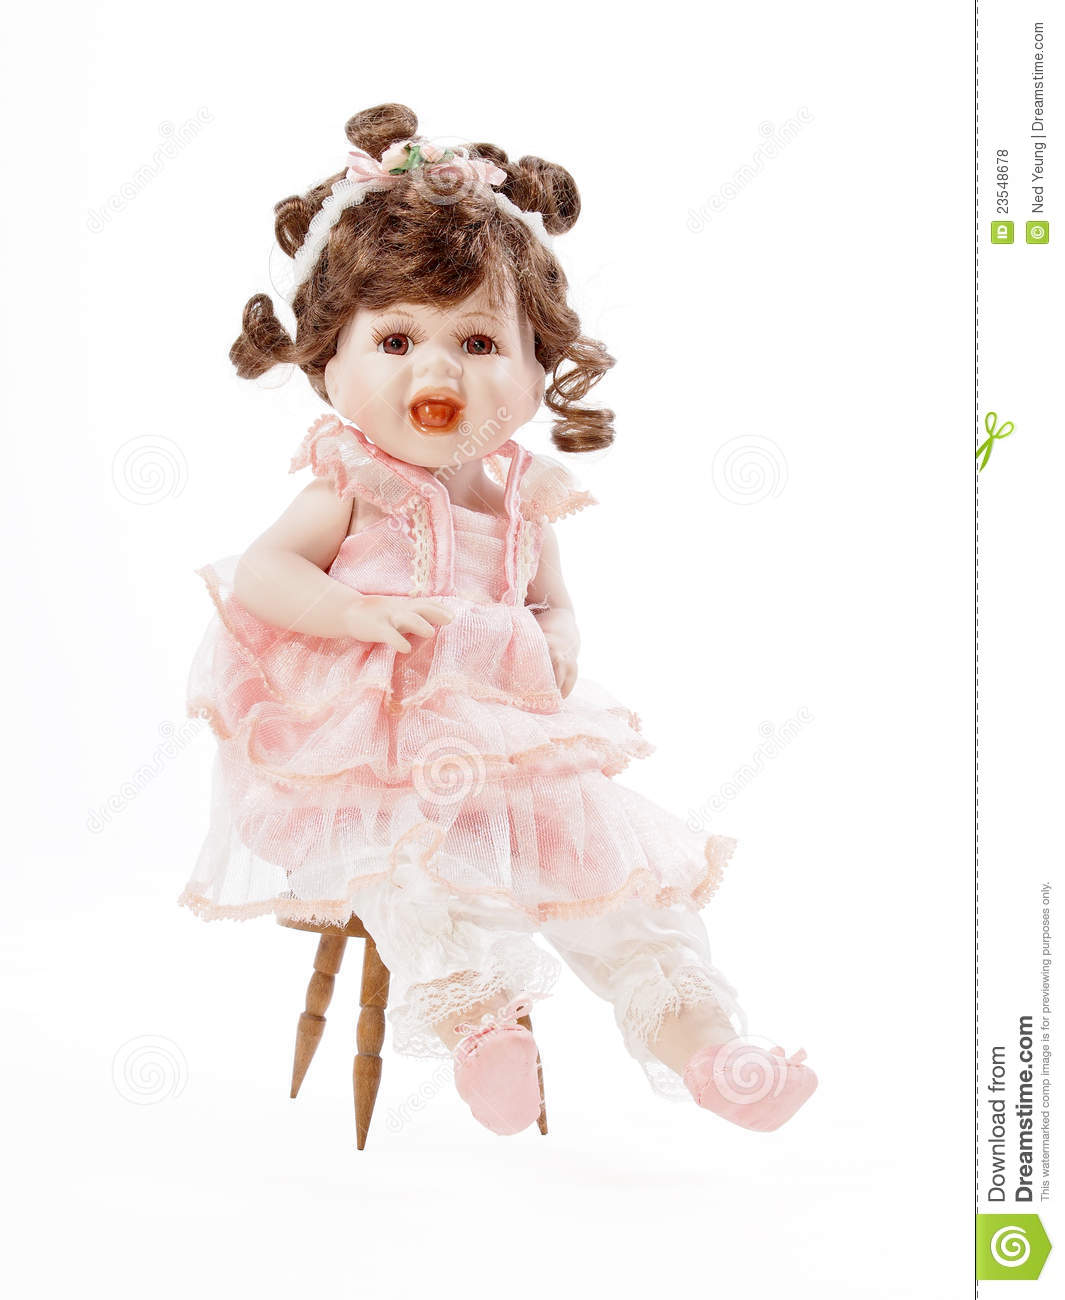 Baby Porcelain Doll sitting on a Wooden Chair